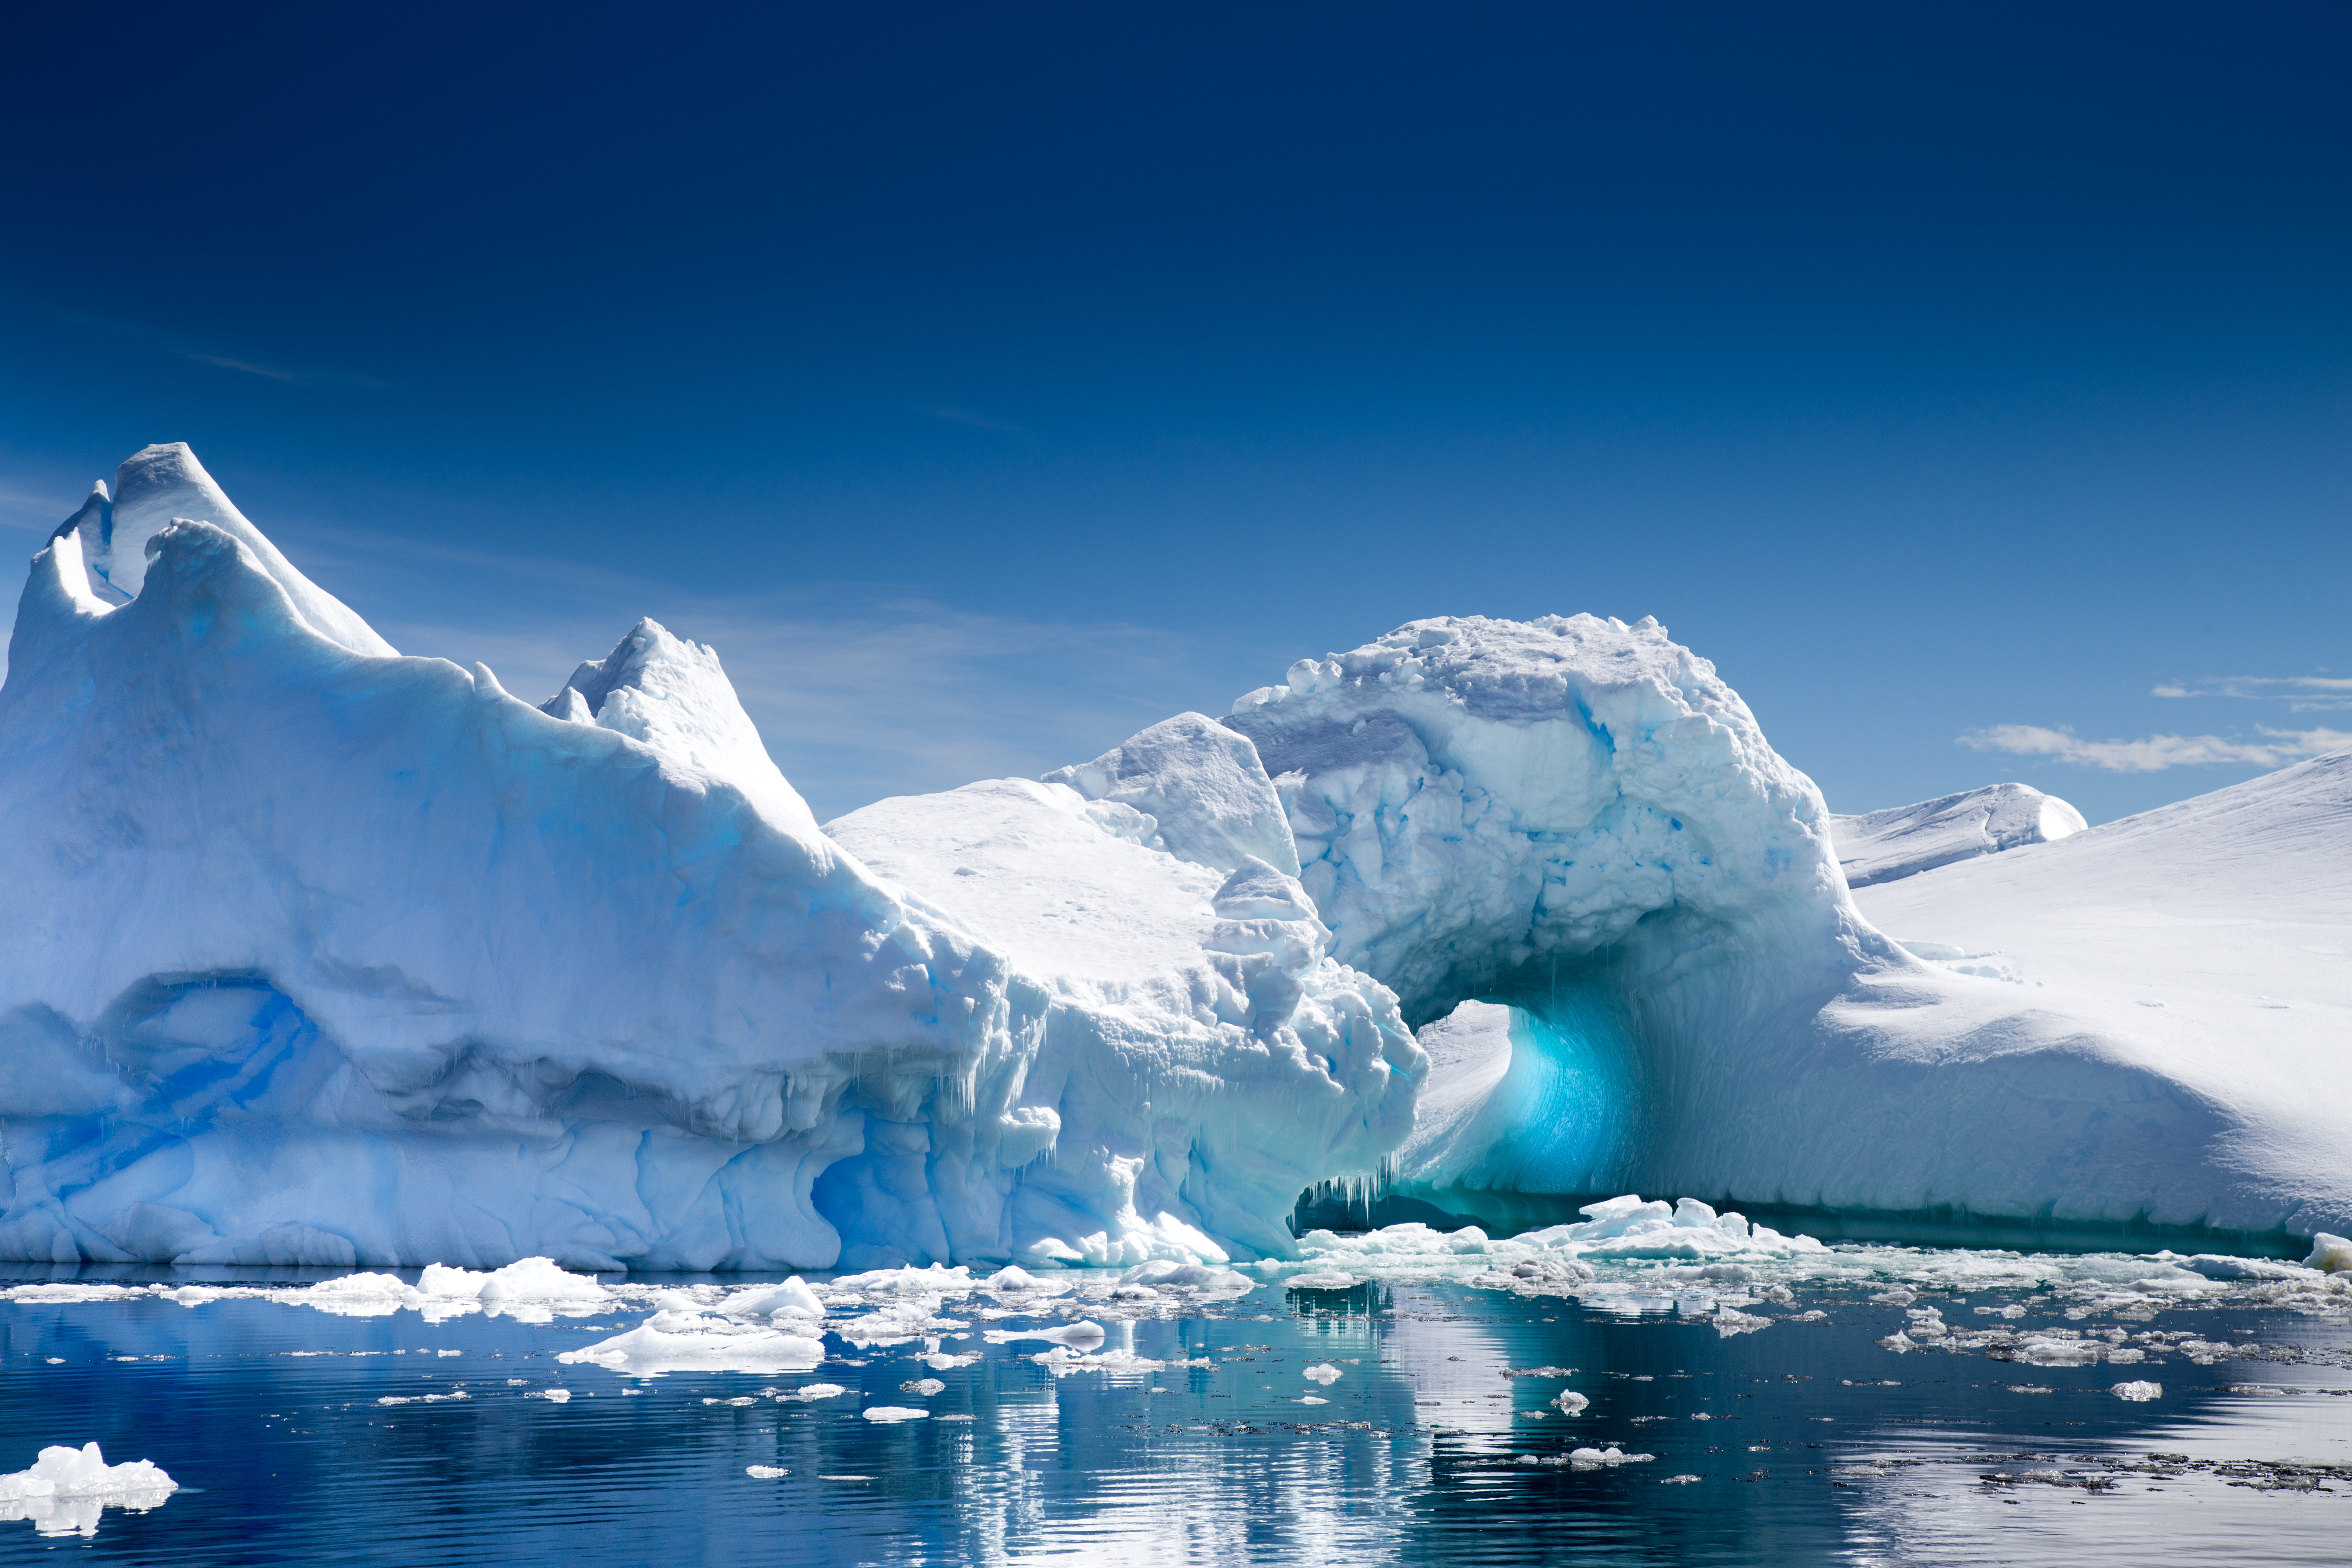 A beautiful Iceberg in Pleneau Bay, Port Charcot, Antarctica vacation